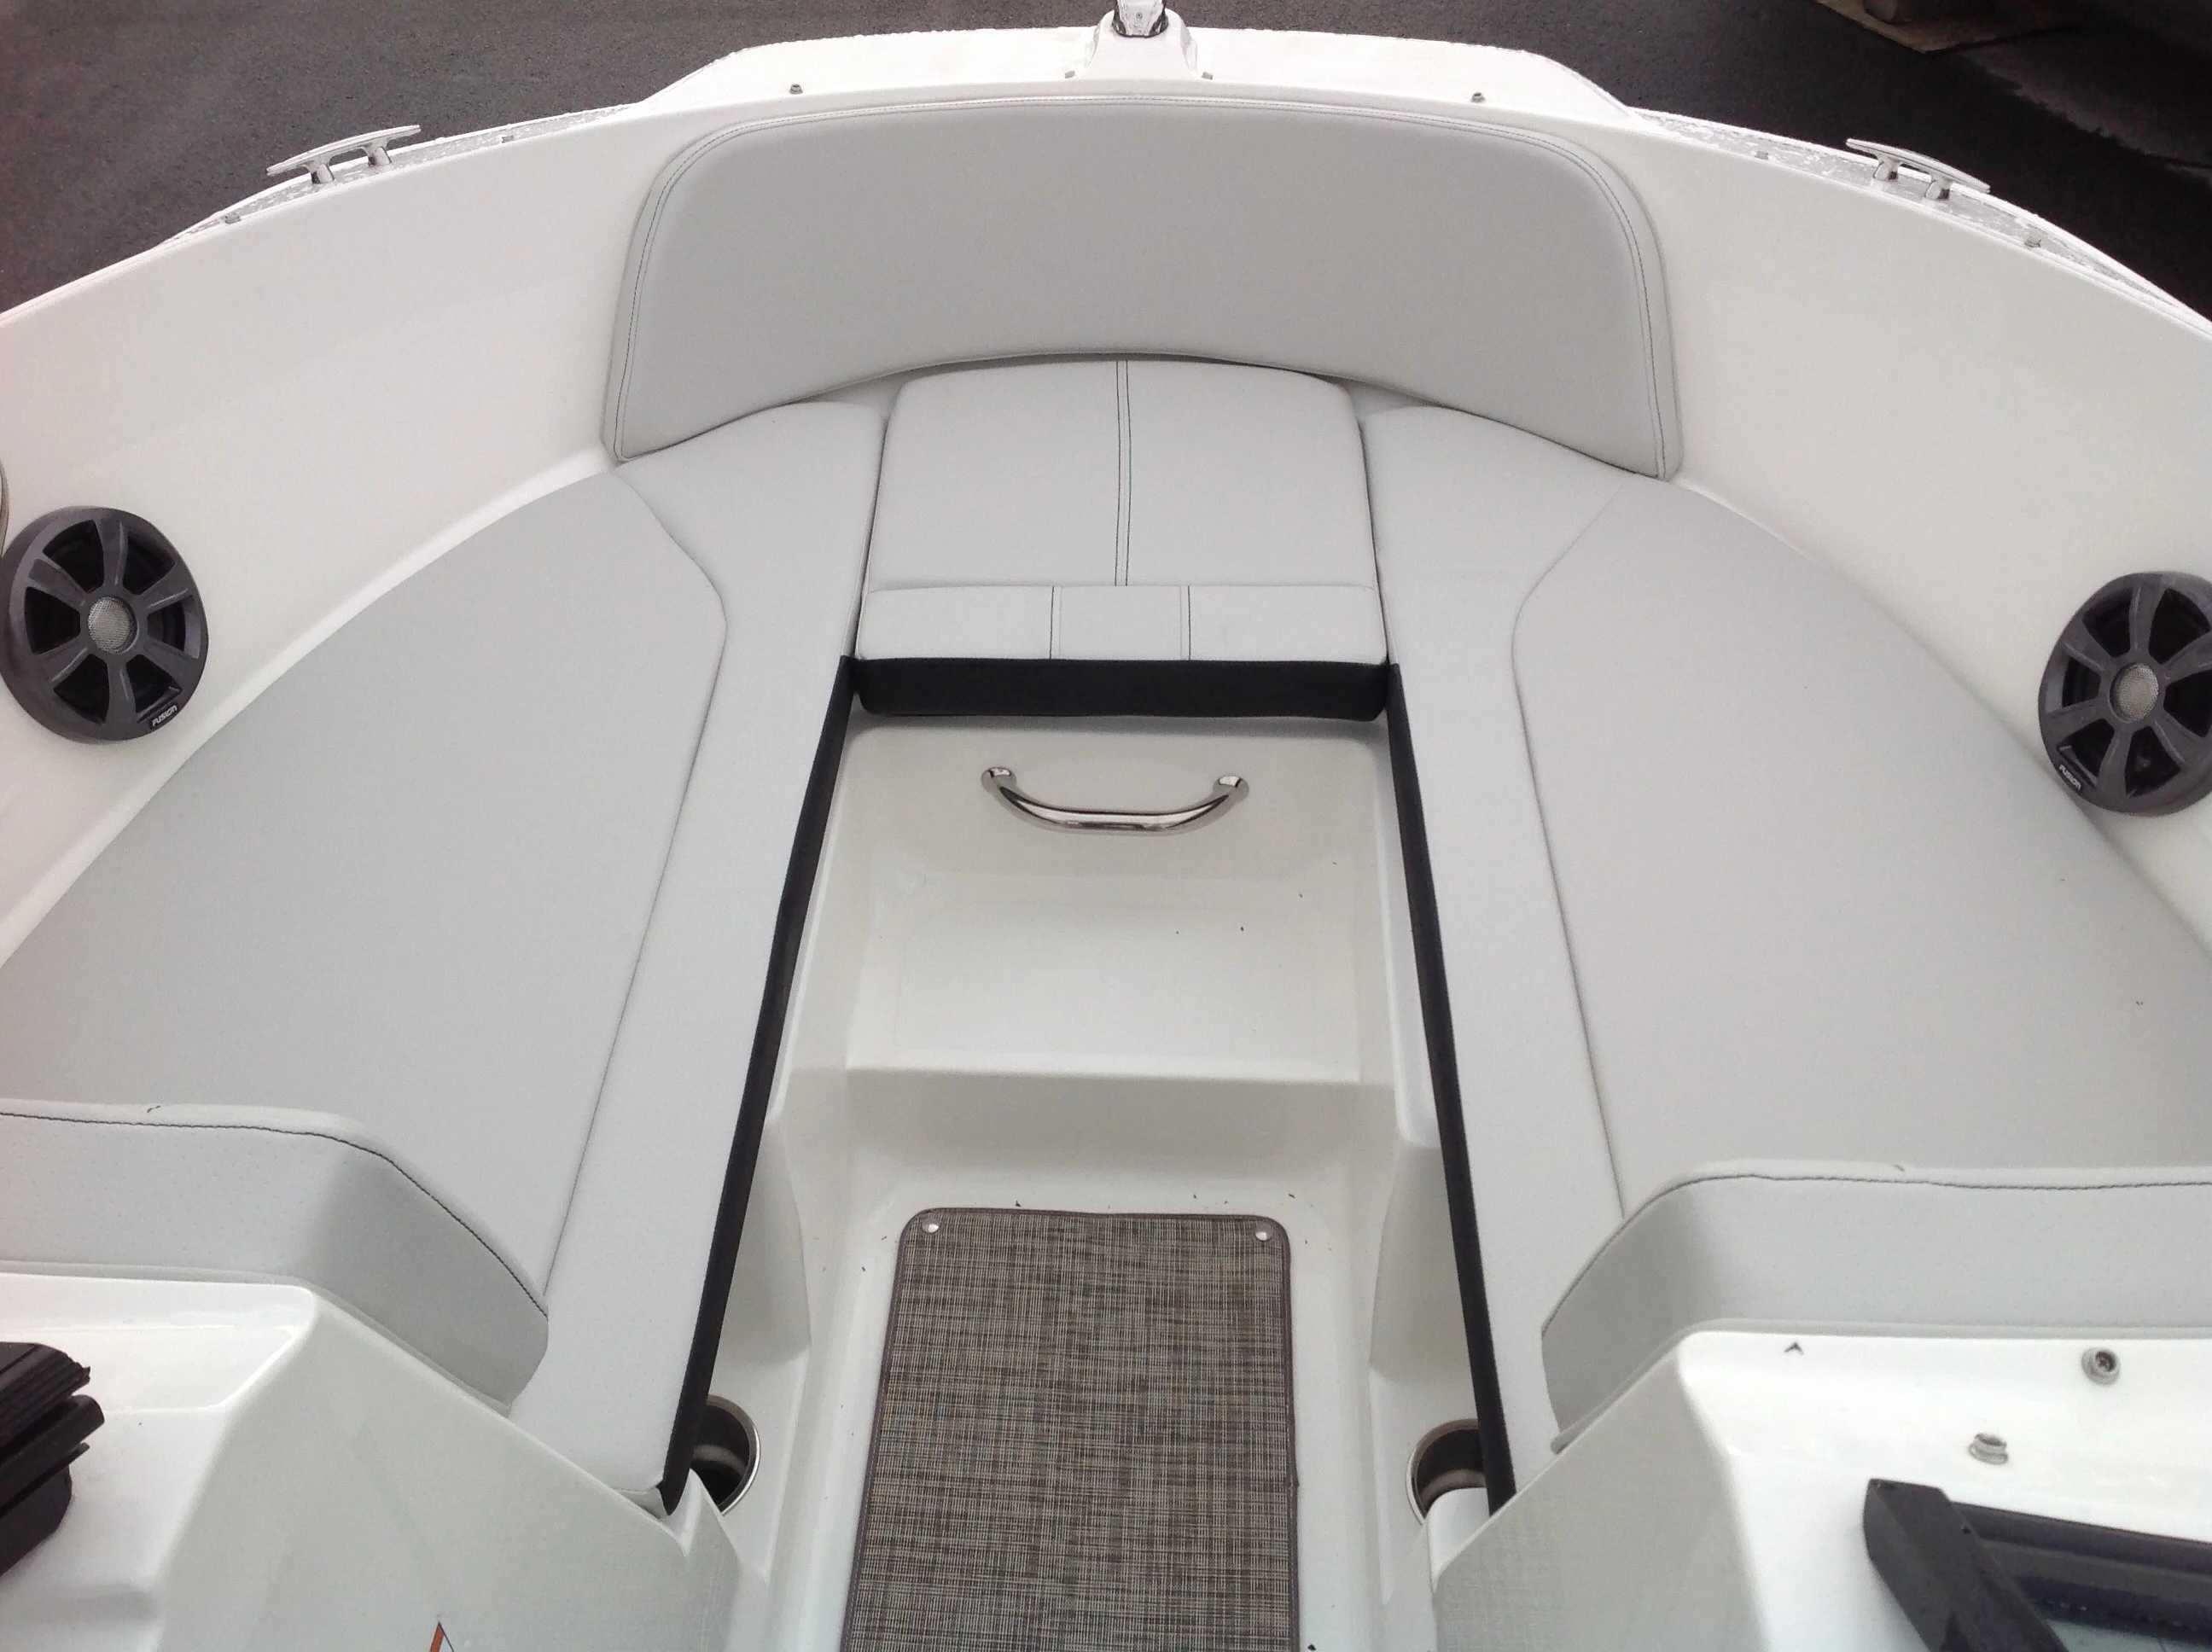 2021 Sea Ray boat for sale, model of the boat is 210 SPX & Image # 5 of 12